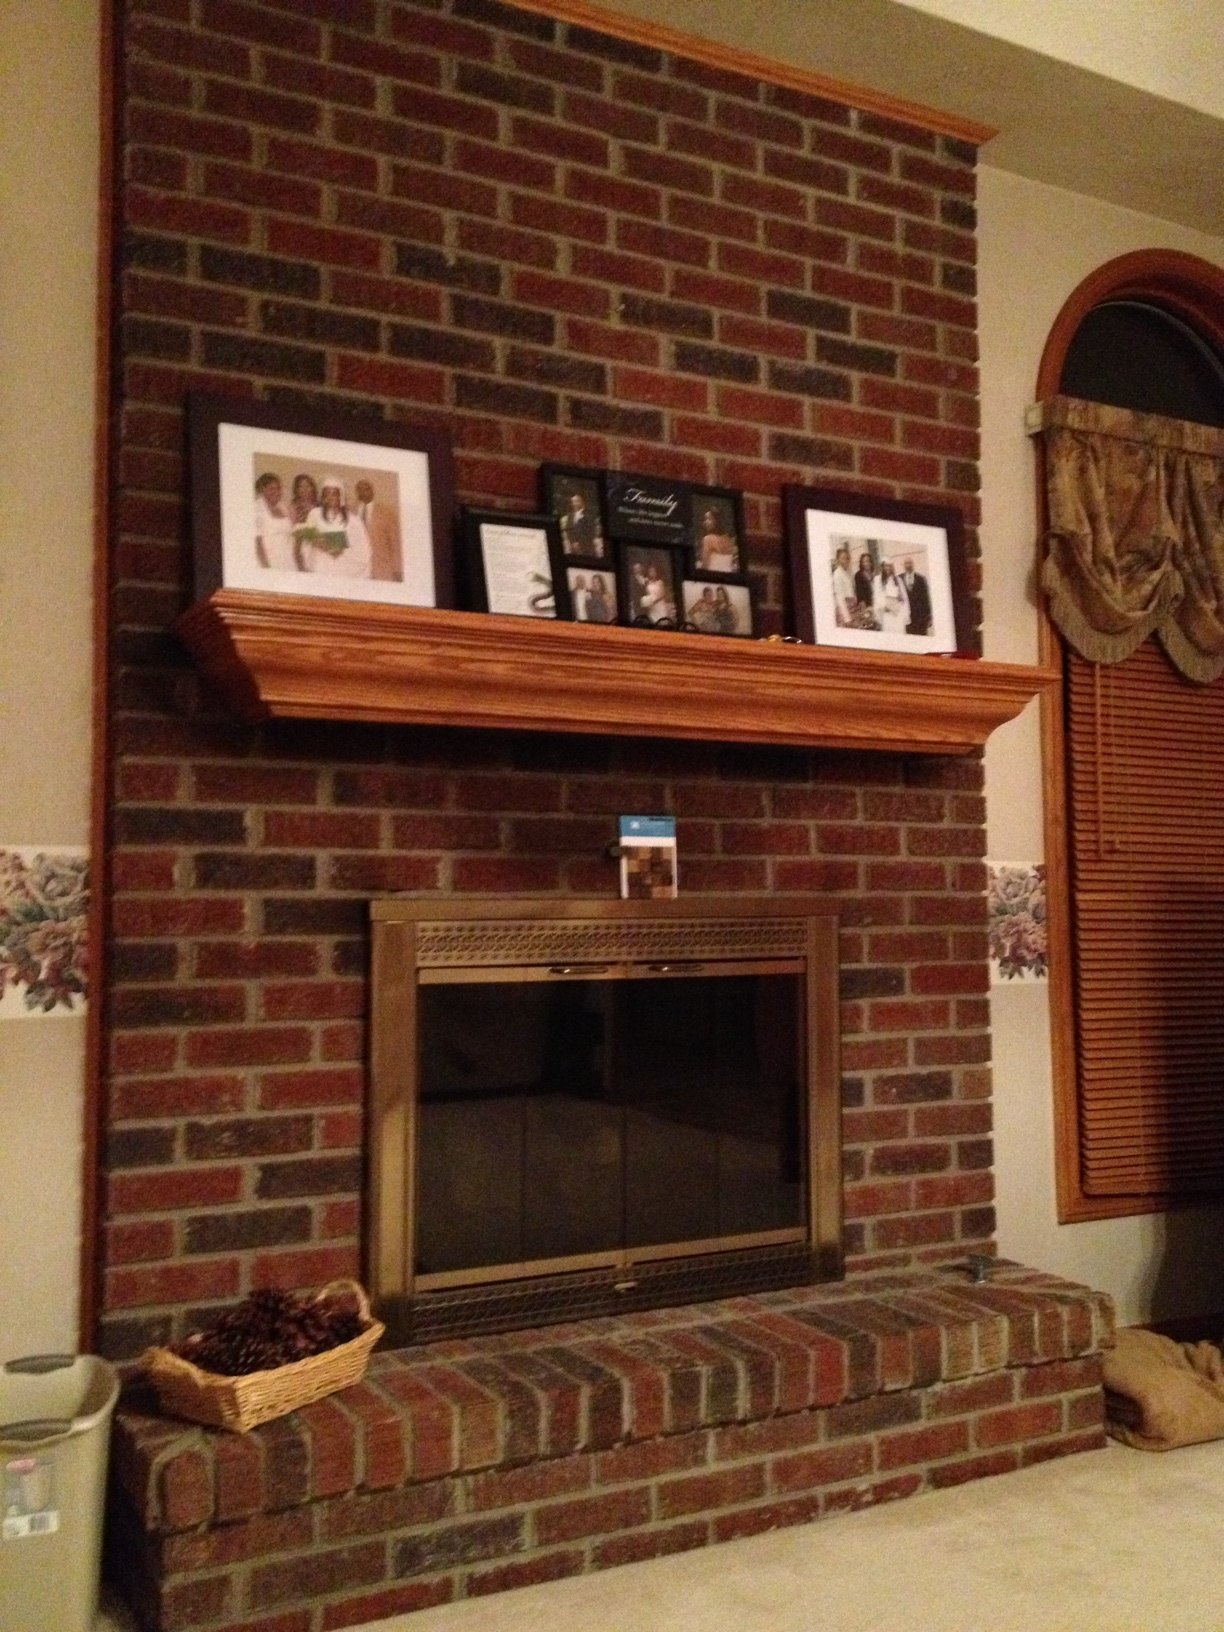 Some options of contemporary brick fireplace makeover Brick fireplace wall decorating ideas